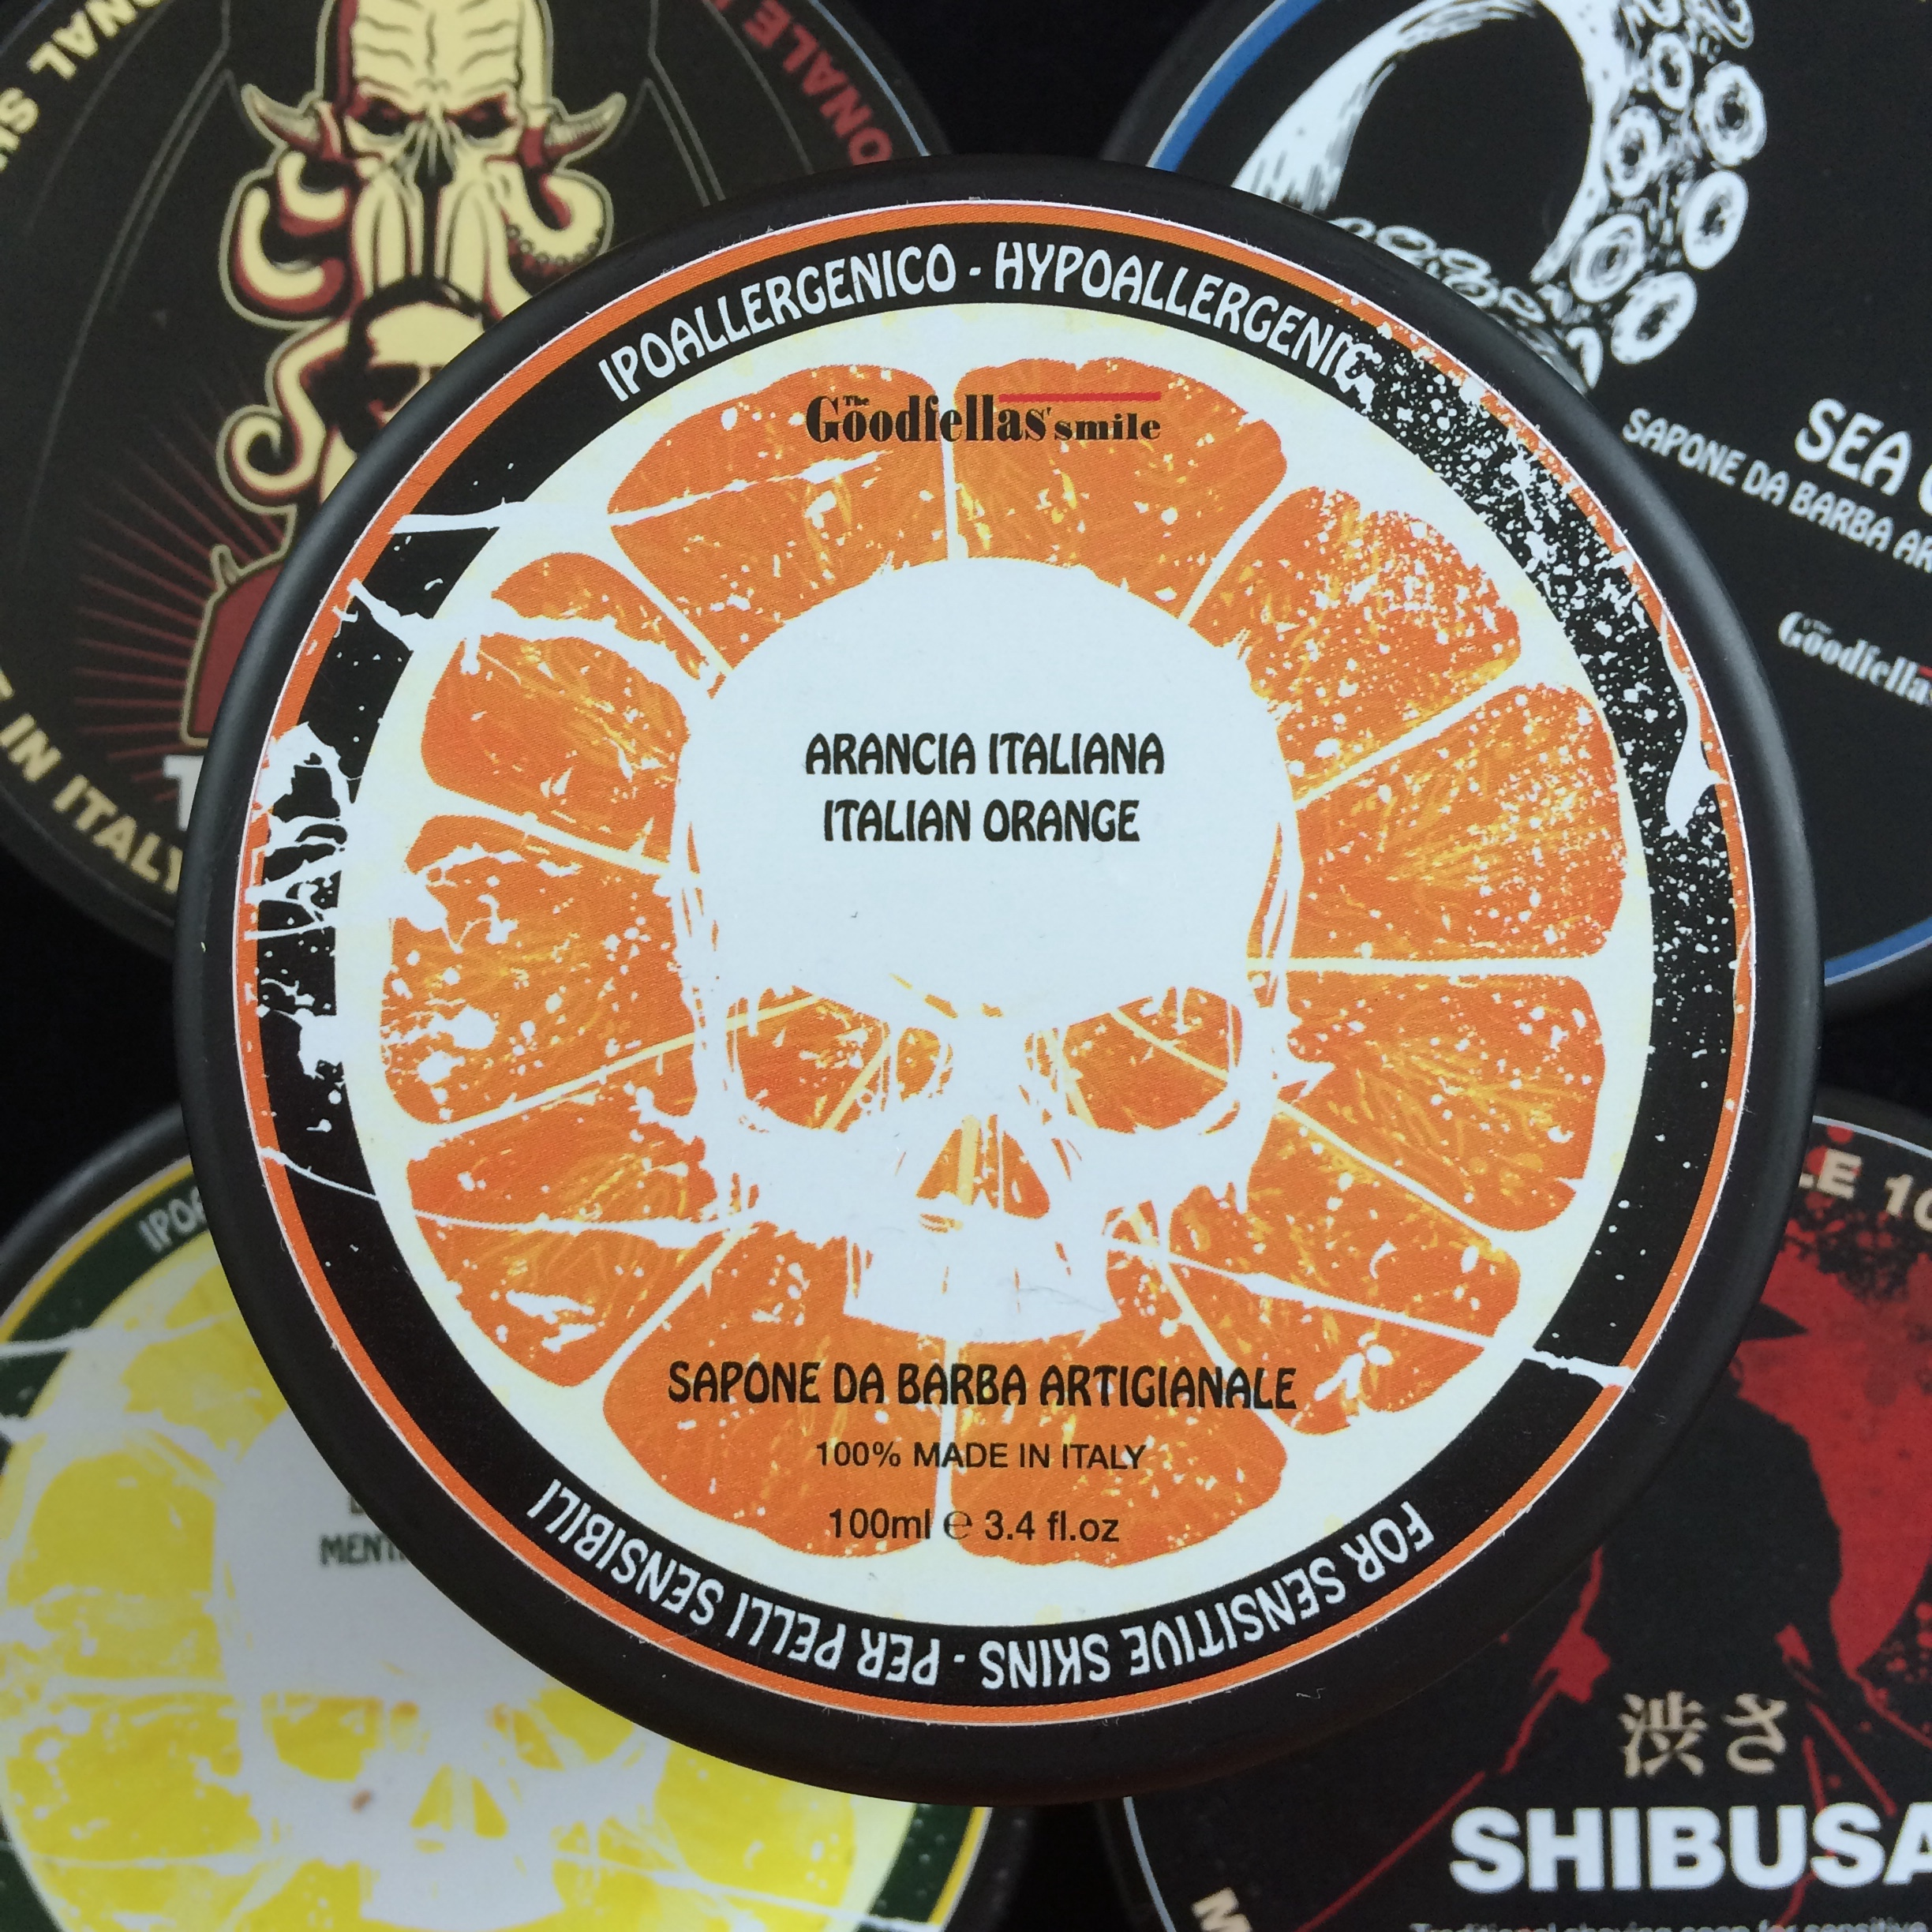 The Goodfellas Smile Shaving Soap - Italian Orange